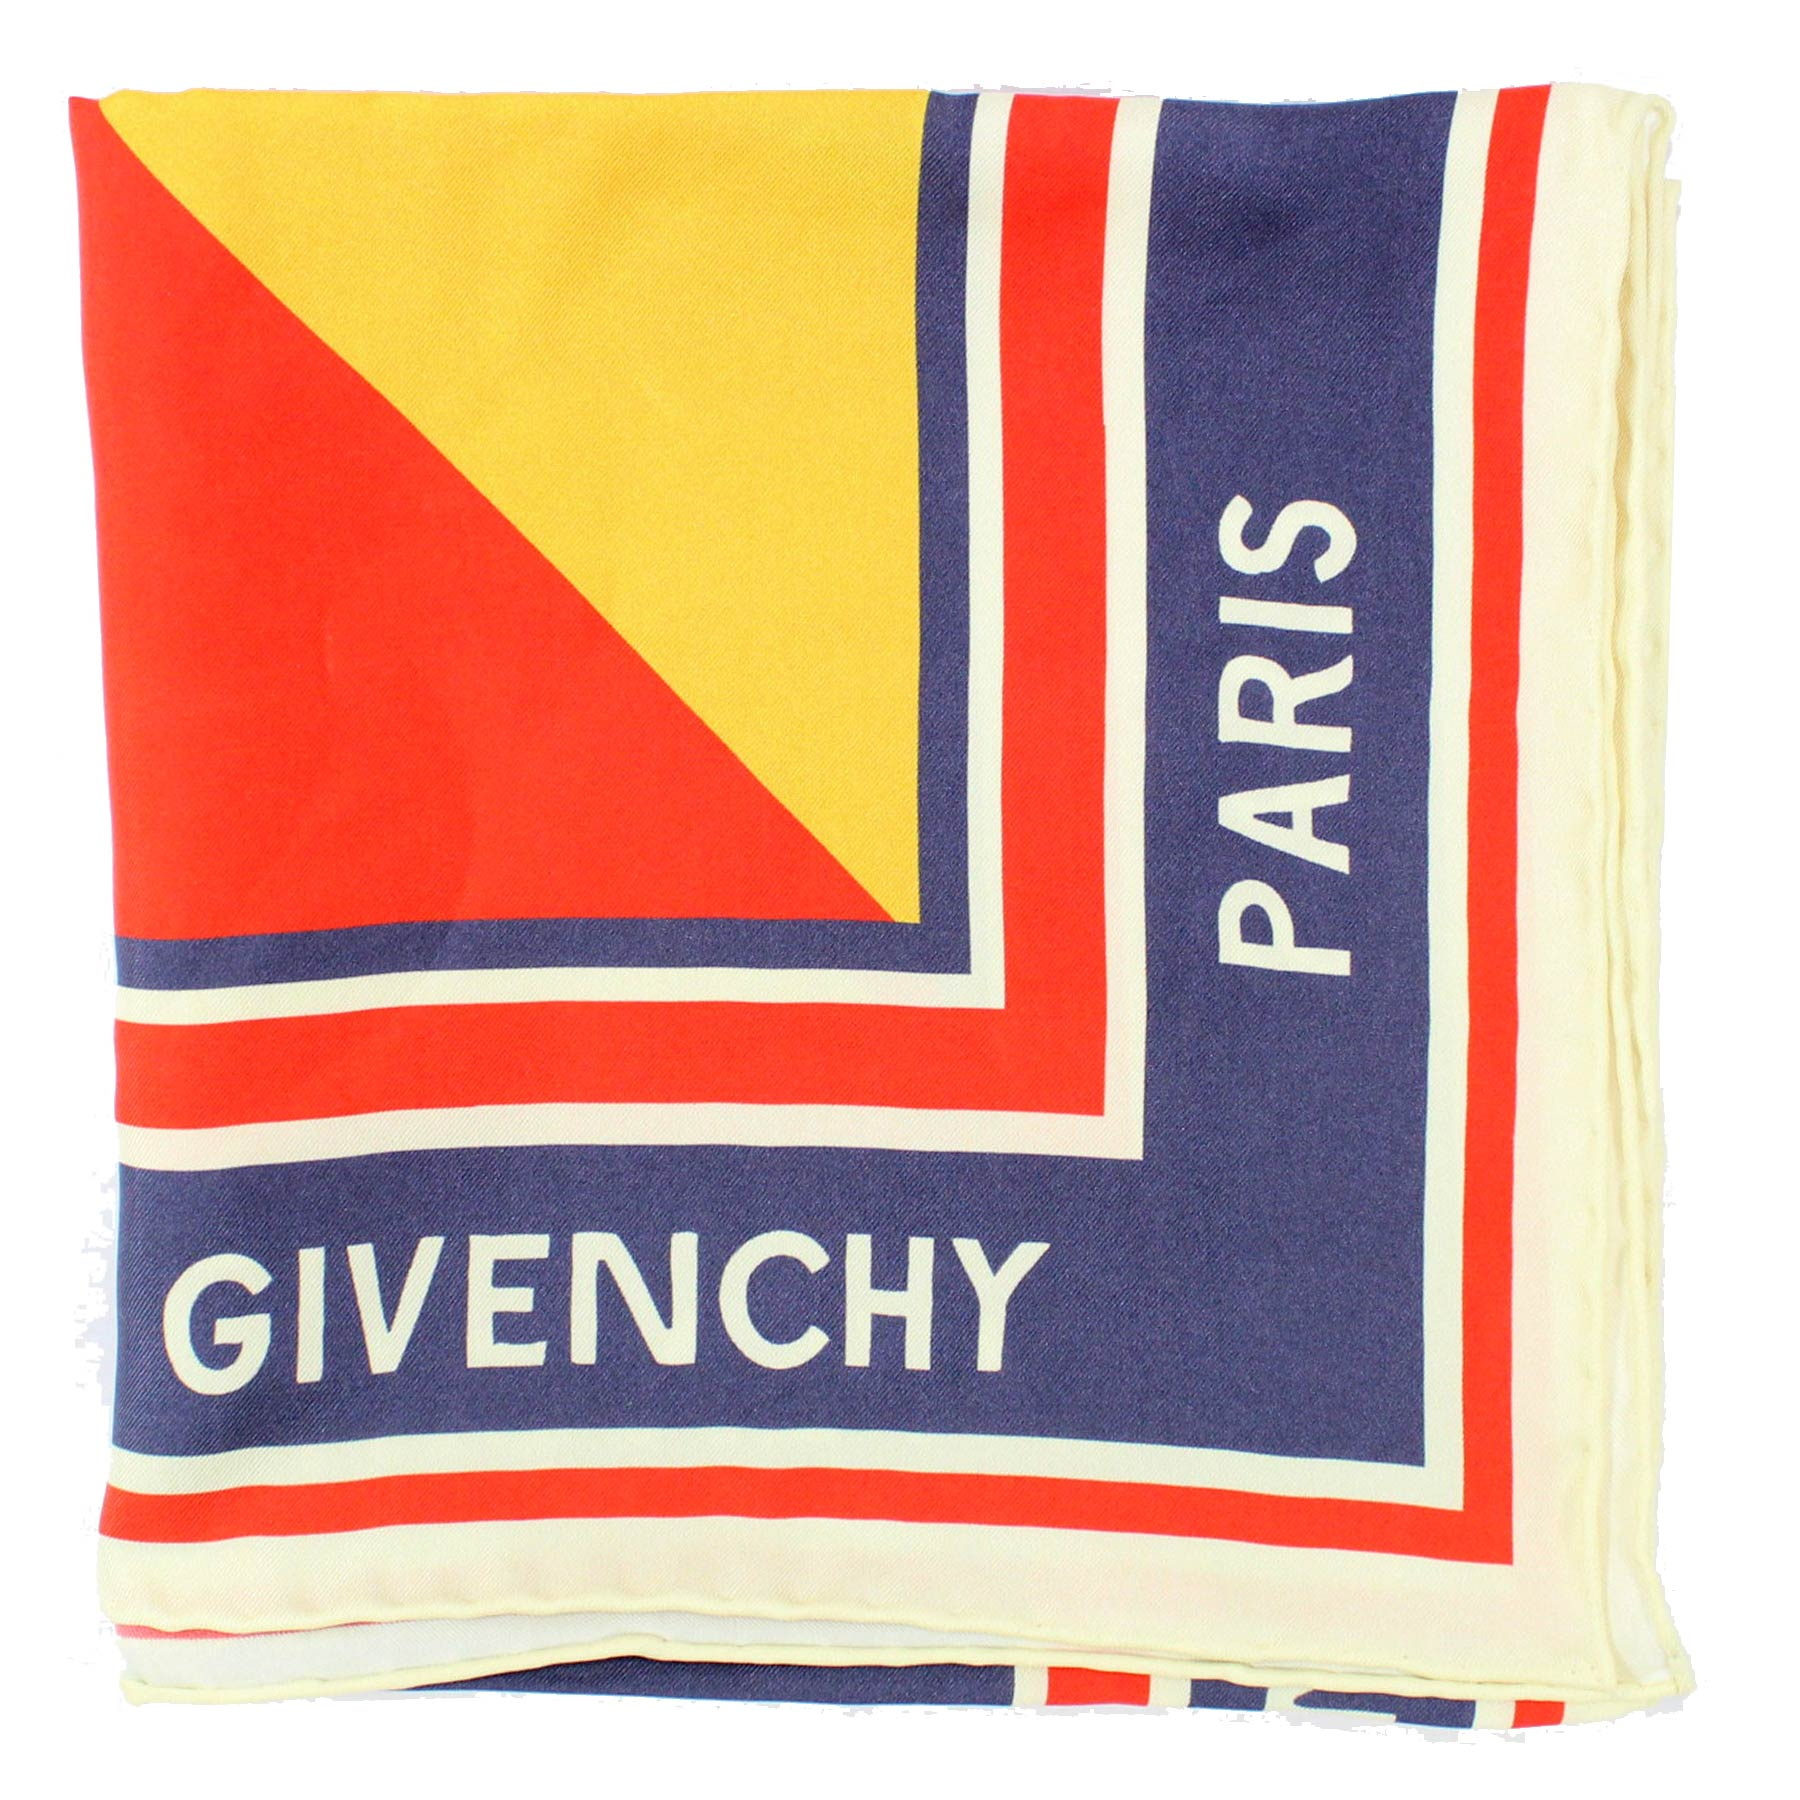 Givenchy Scarf Dark Blue Iconic Flash Design - Large Square Silk Scarf SALE